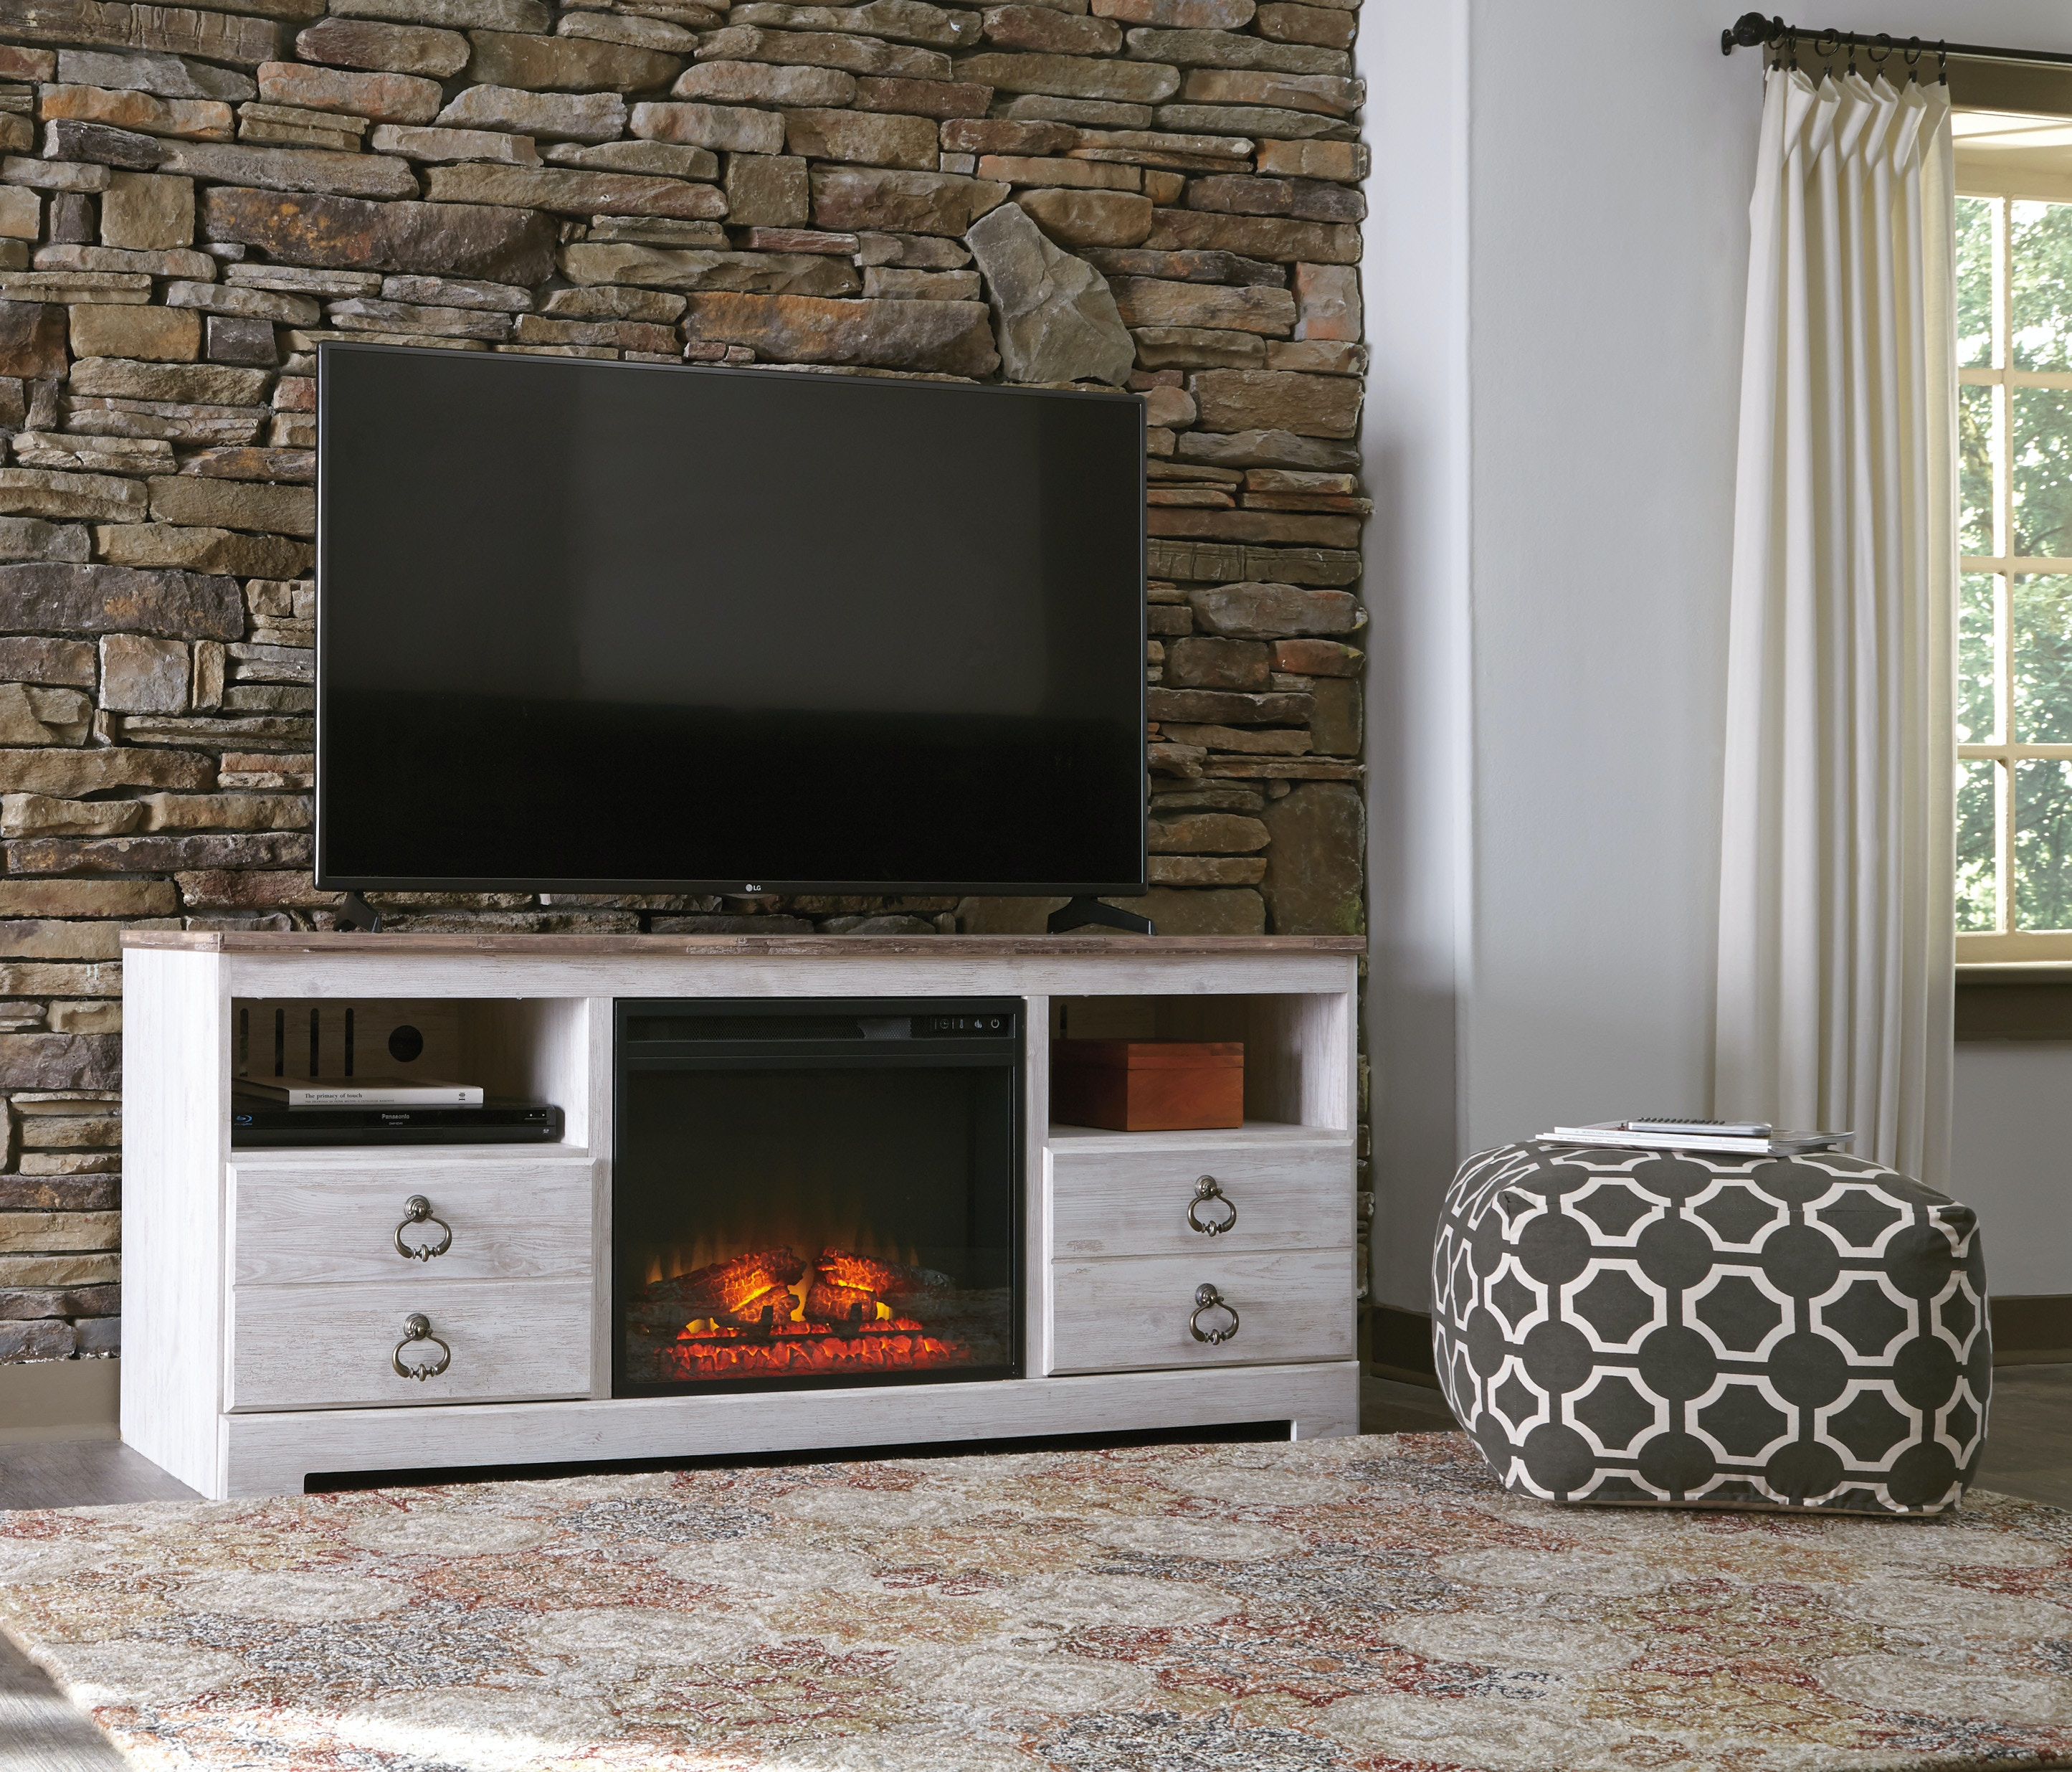 Superior TV Stand W/Fireplace Insert W267 68/W100 01